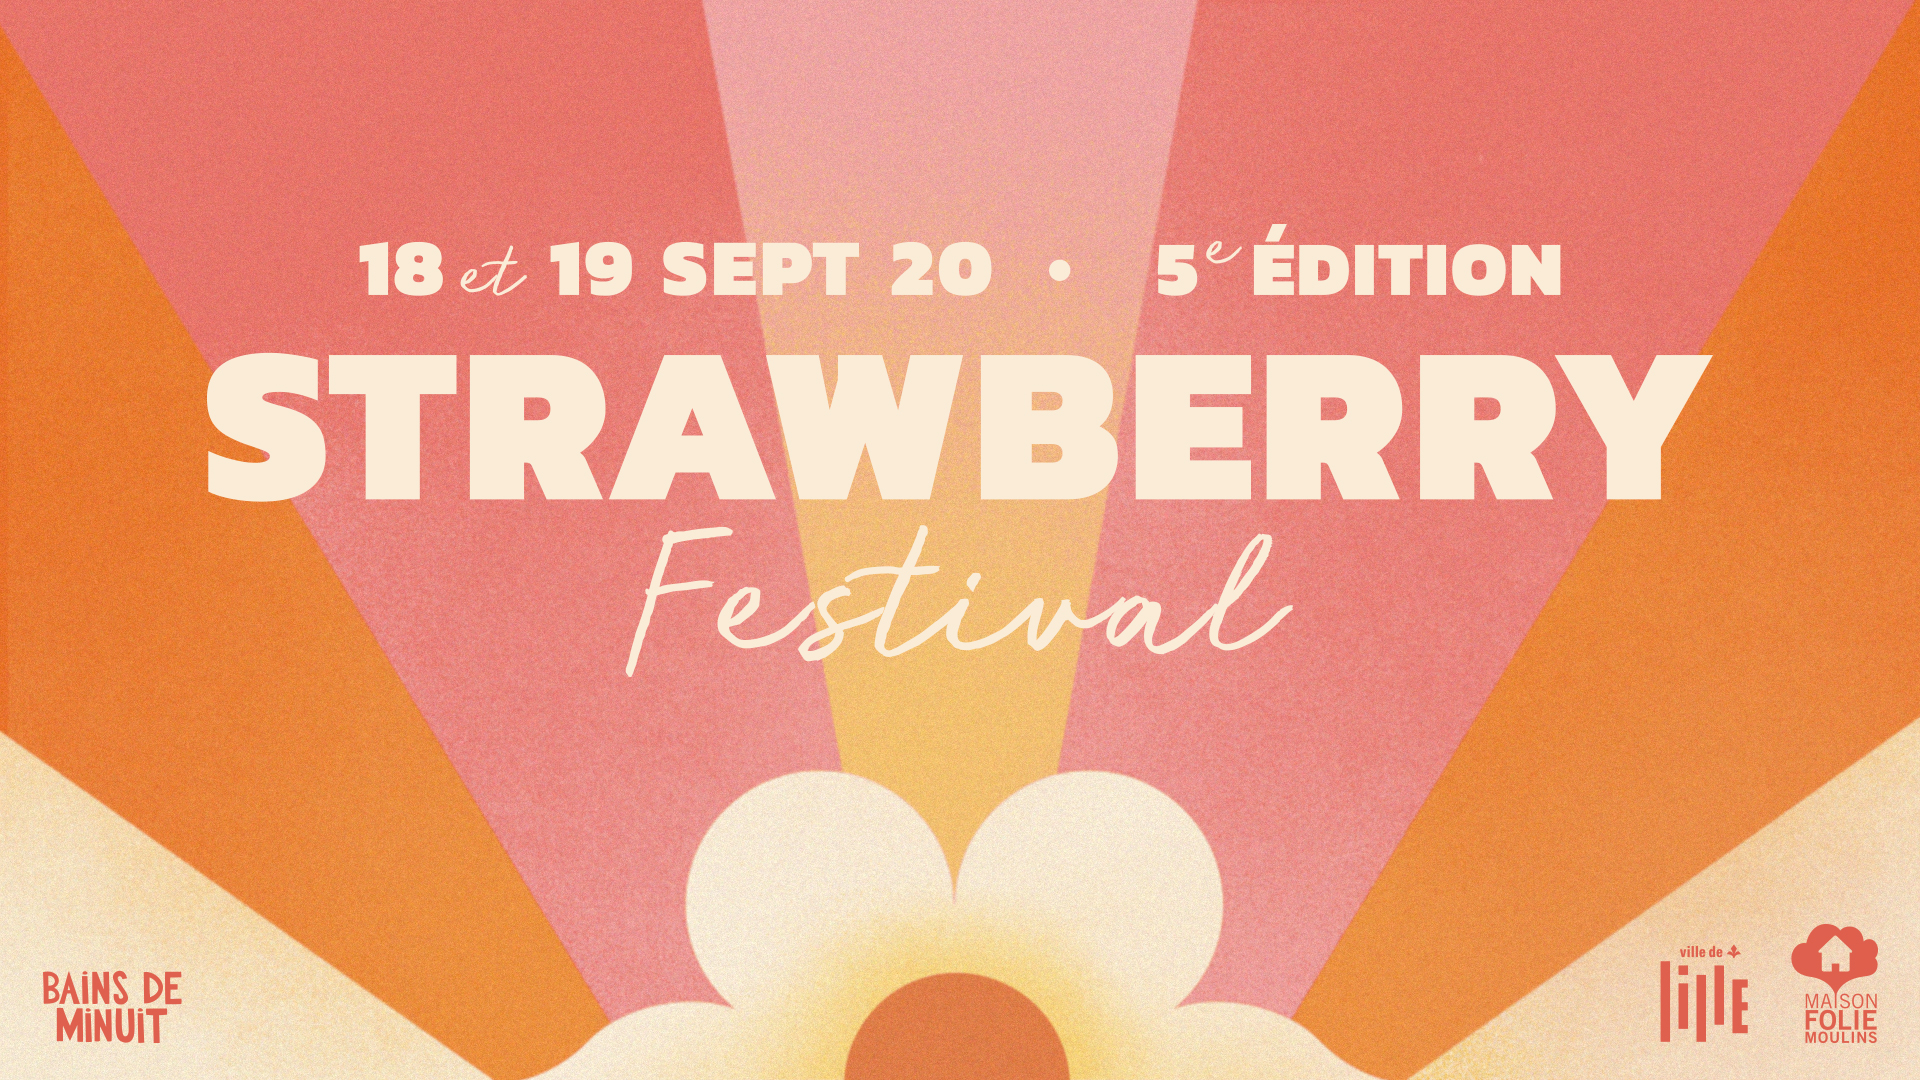 18-19 sept. 20 – STRAWBERRY FEST #5 / Maison Folie Moulins, Lille